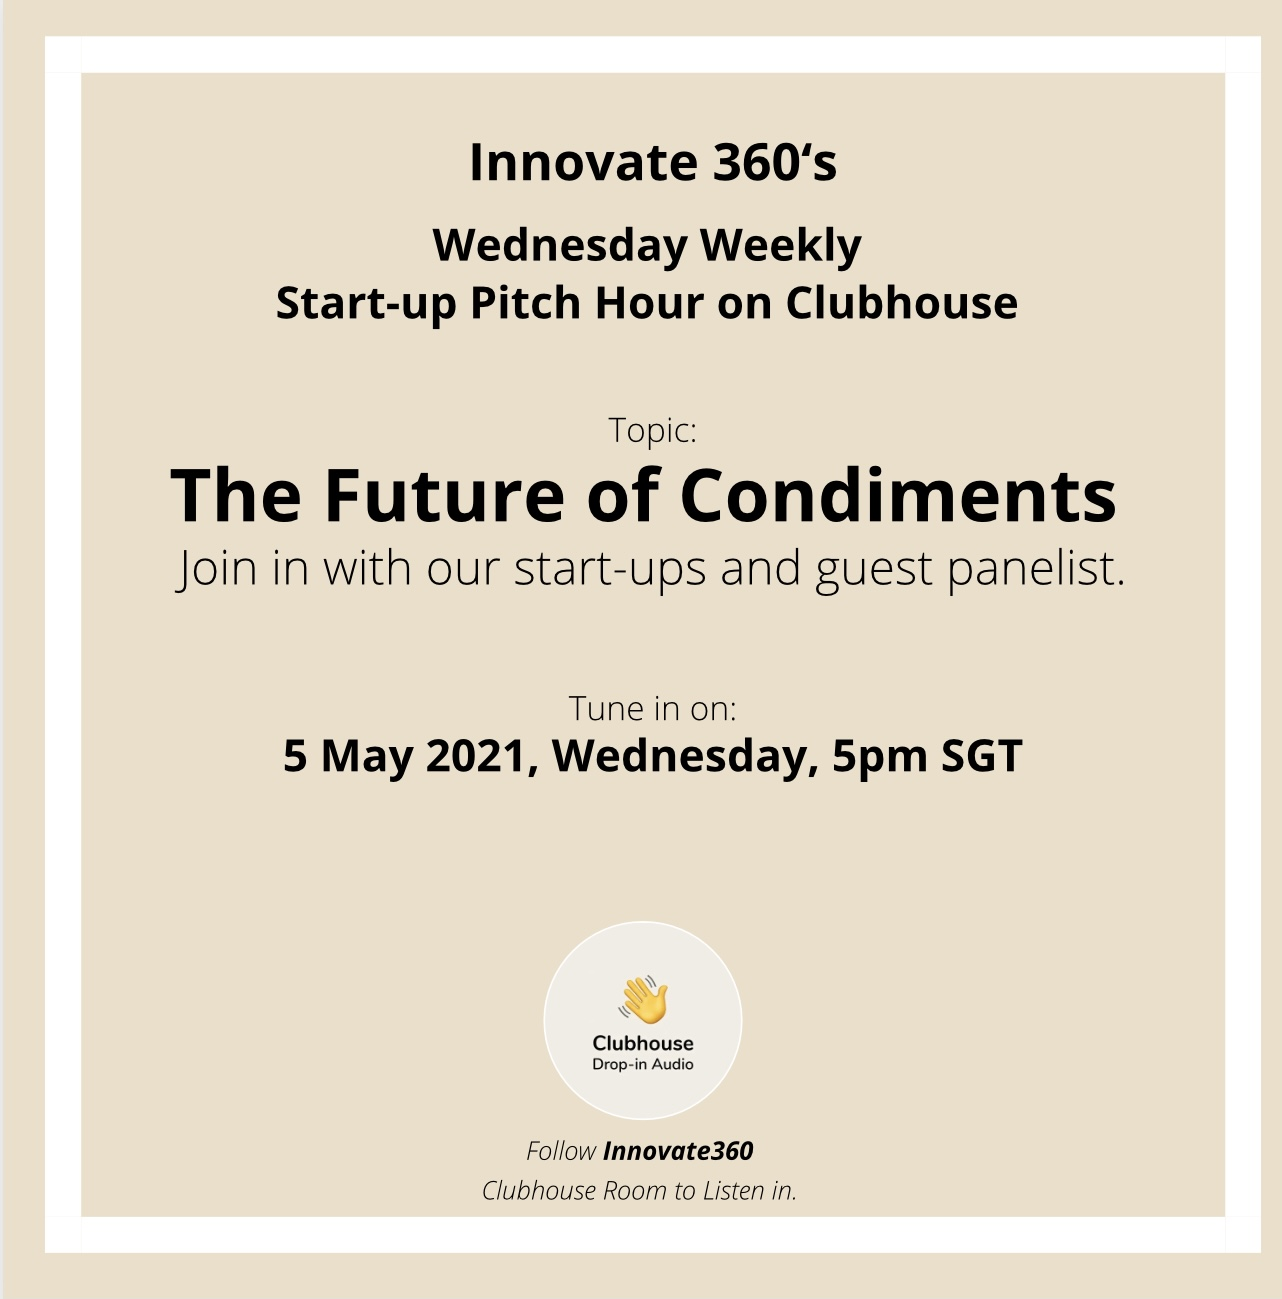 Wednesday Weekly Start-Up Pitch Hour on Clubhouse: The Future of Condiments